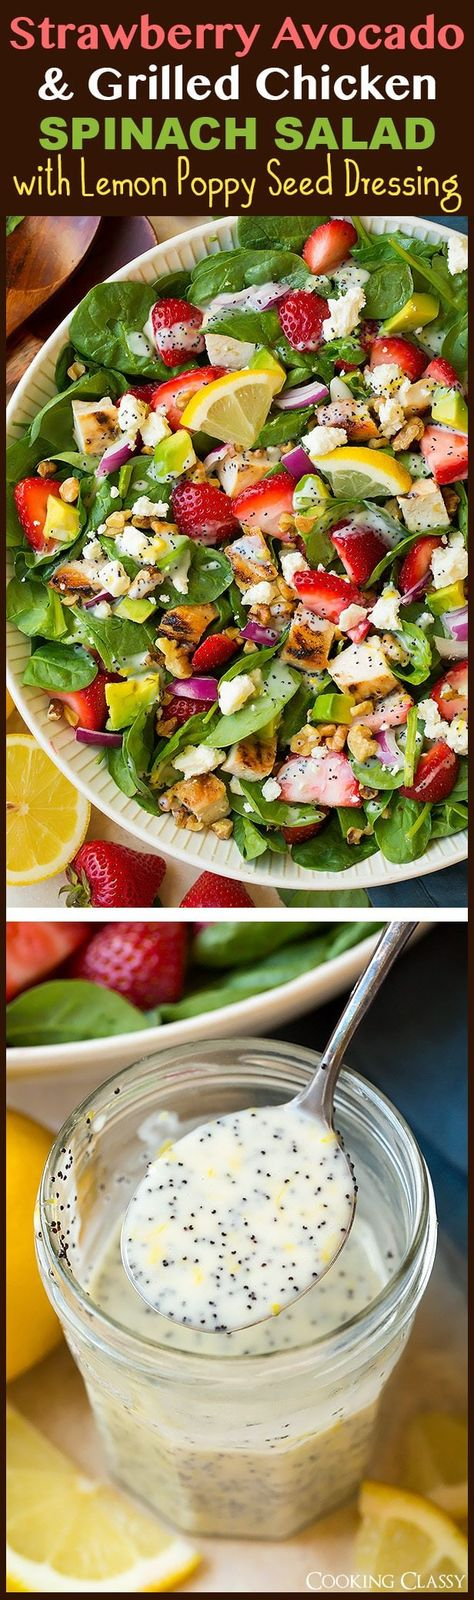 Strawberry Grilled Chicken Spinach Salad with Creamy Poppy Seed Dressing - Such a bright and refreshing summer salad! This fresh spinach salad is layered with sweet strawberries, tender chicken, crunchy walnuts and tangy feta and it's finished with a creamy poppy seed dressing. #strawberry #spinachsalad #grilledchicken #poppyseeddressing #salad